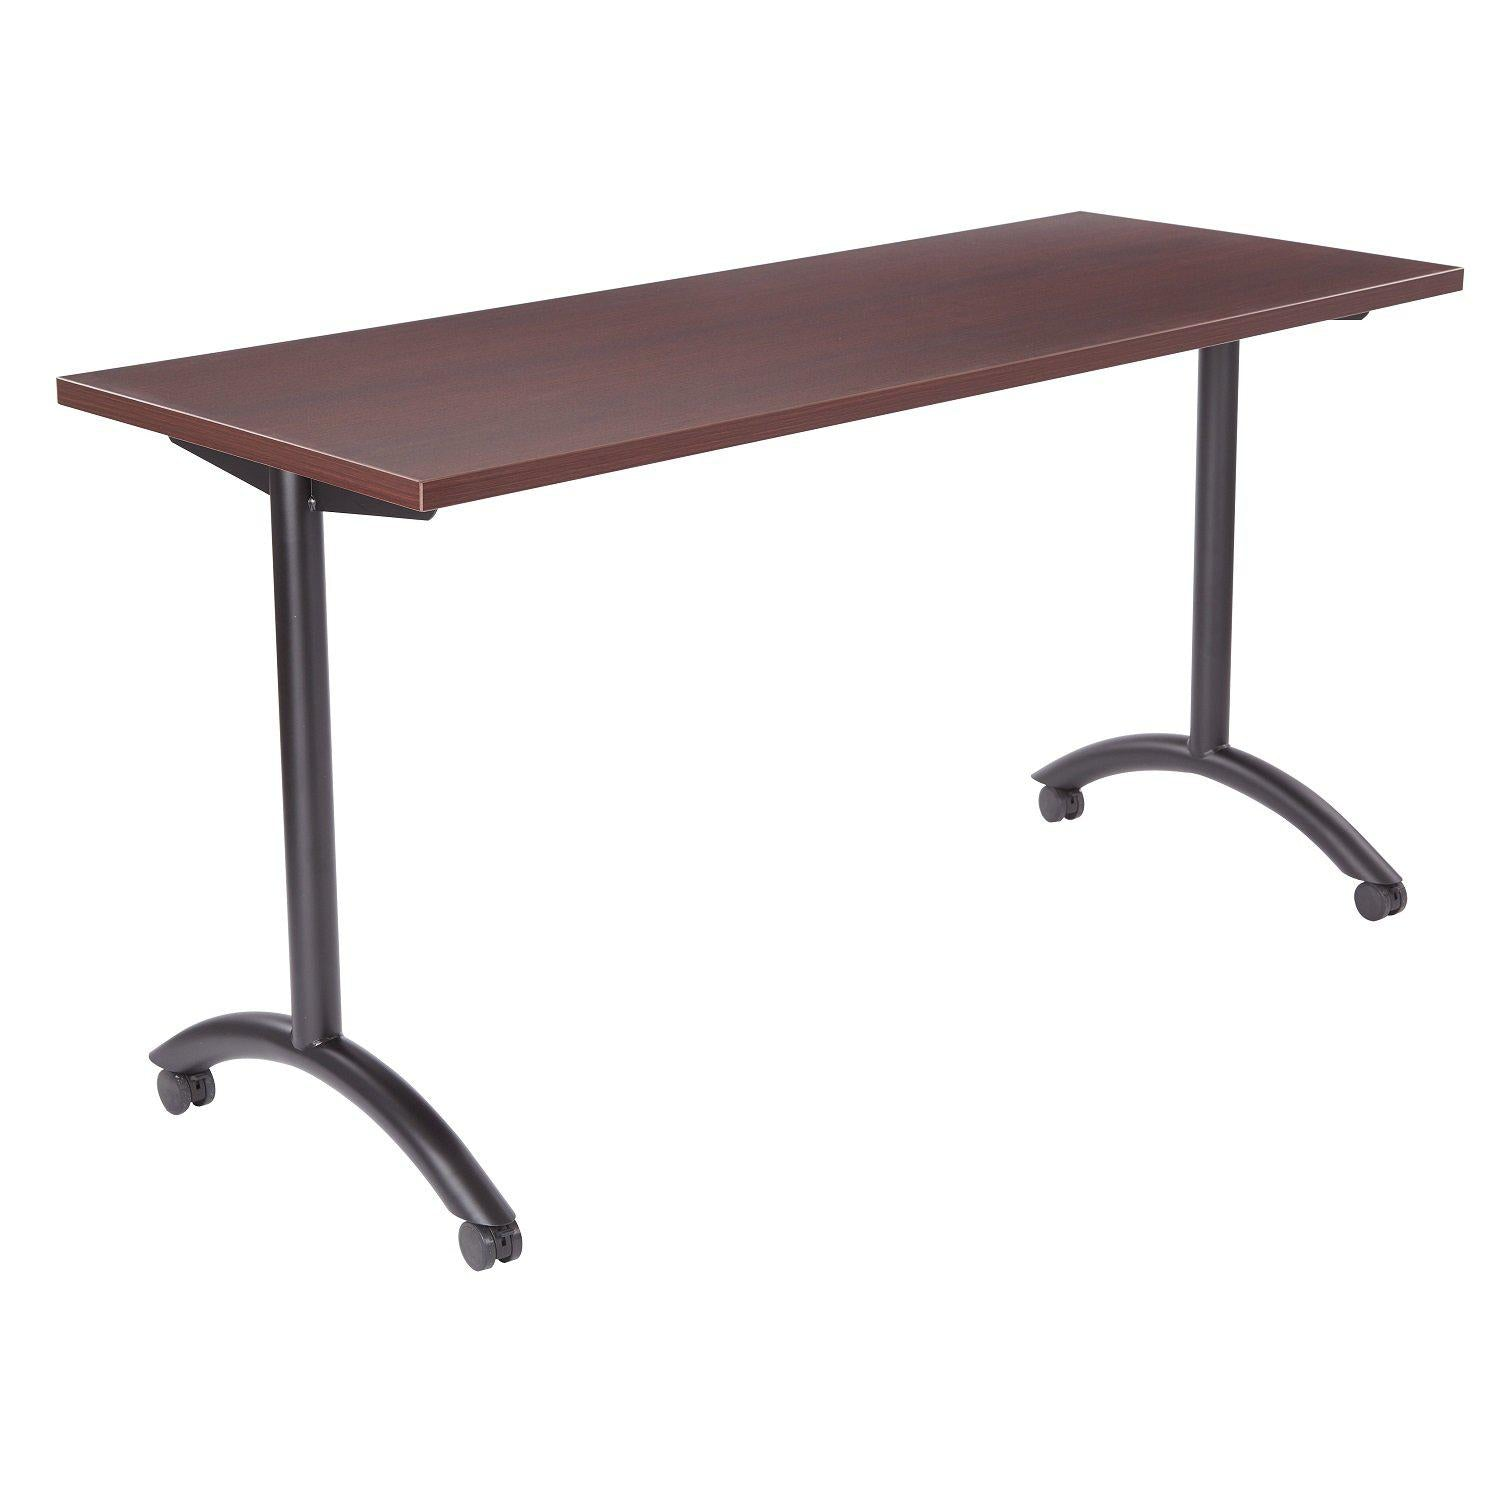 "Pace Table with T-Arc Legs, 72"" x 24"""